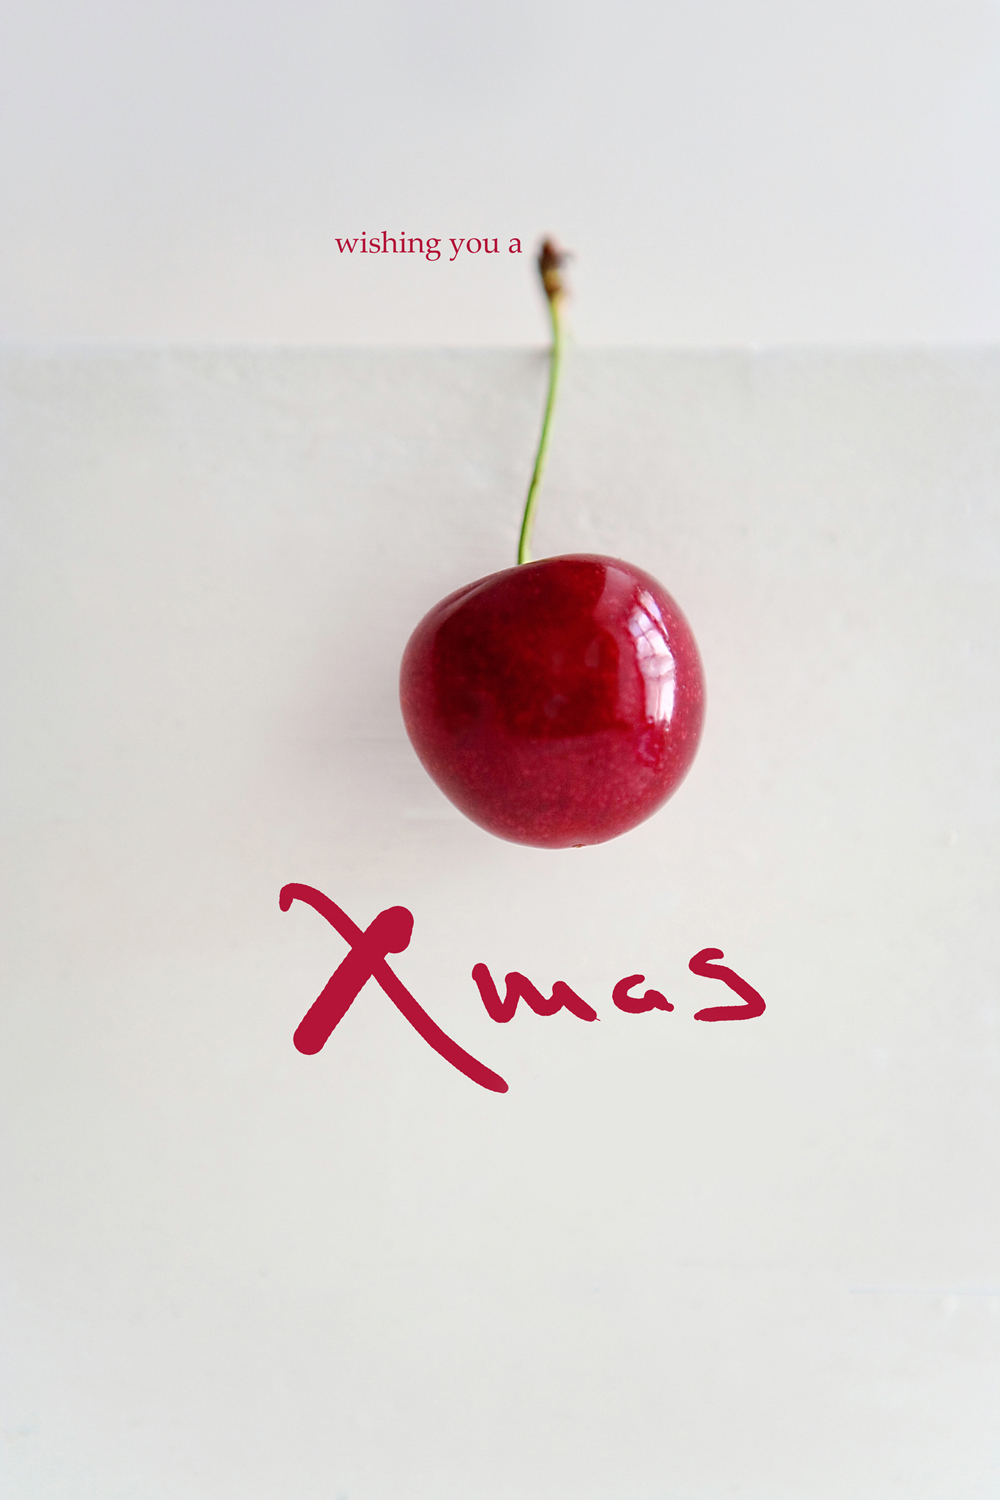 Wishing you all a very Cherry Christmas… | Food, Photography ...